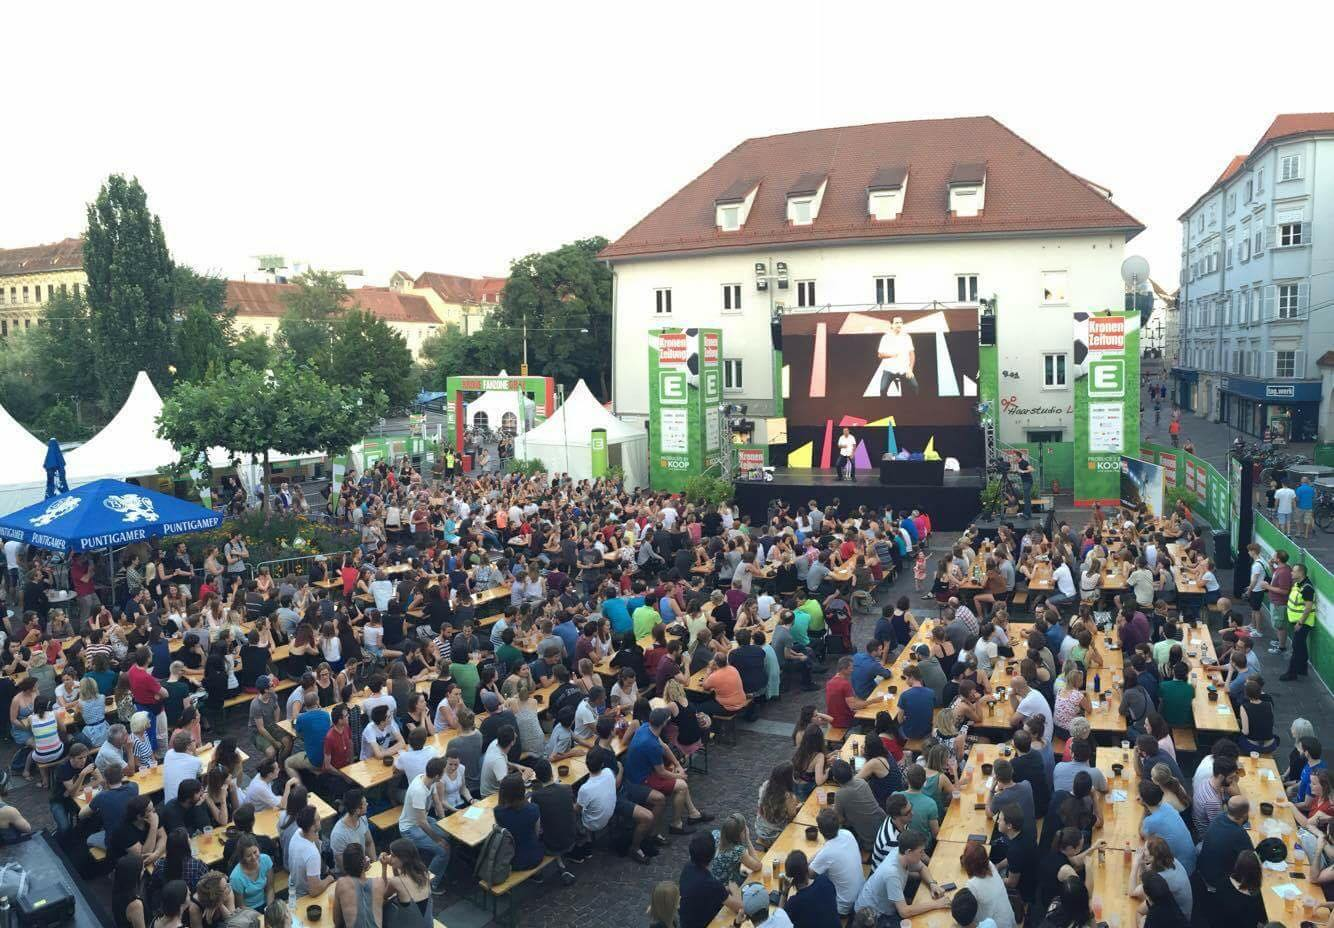 #Public Viewing 2016 #Fanzone #Graz #Events #KOOPlive